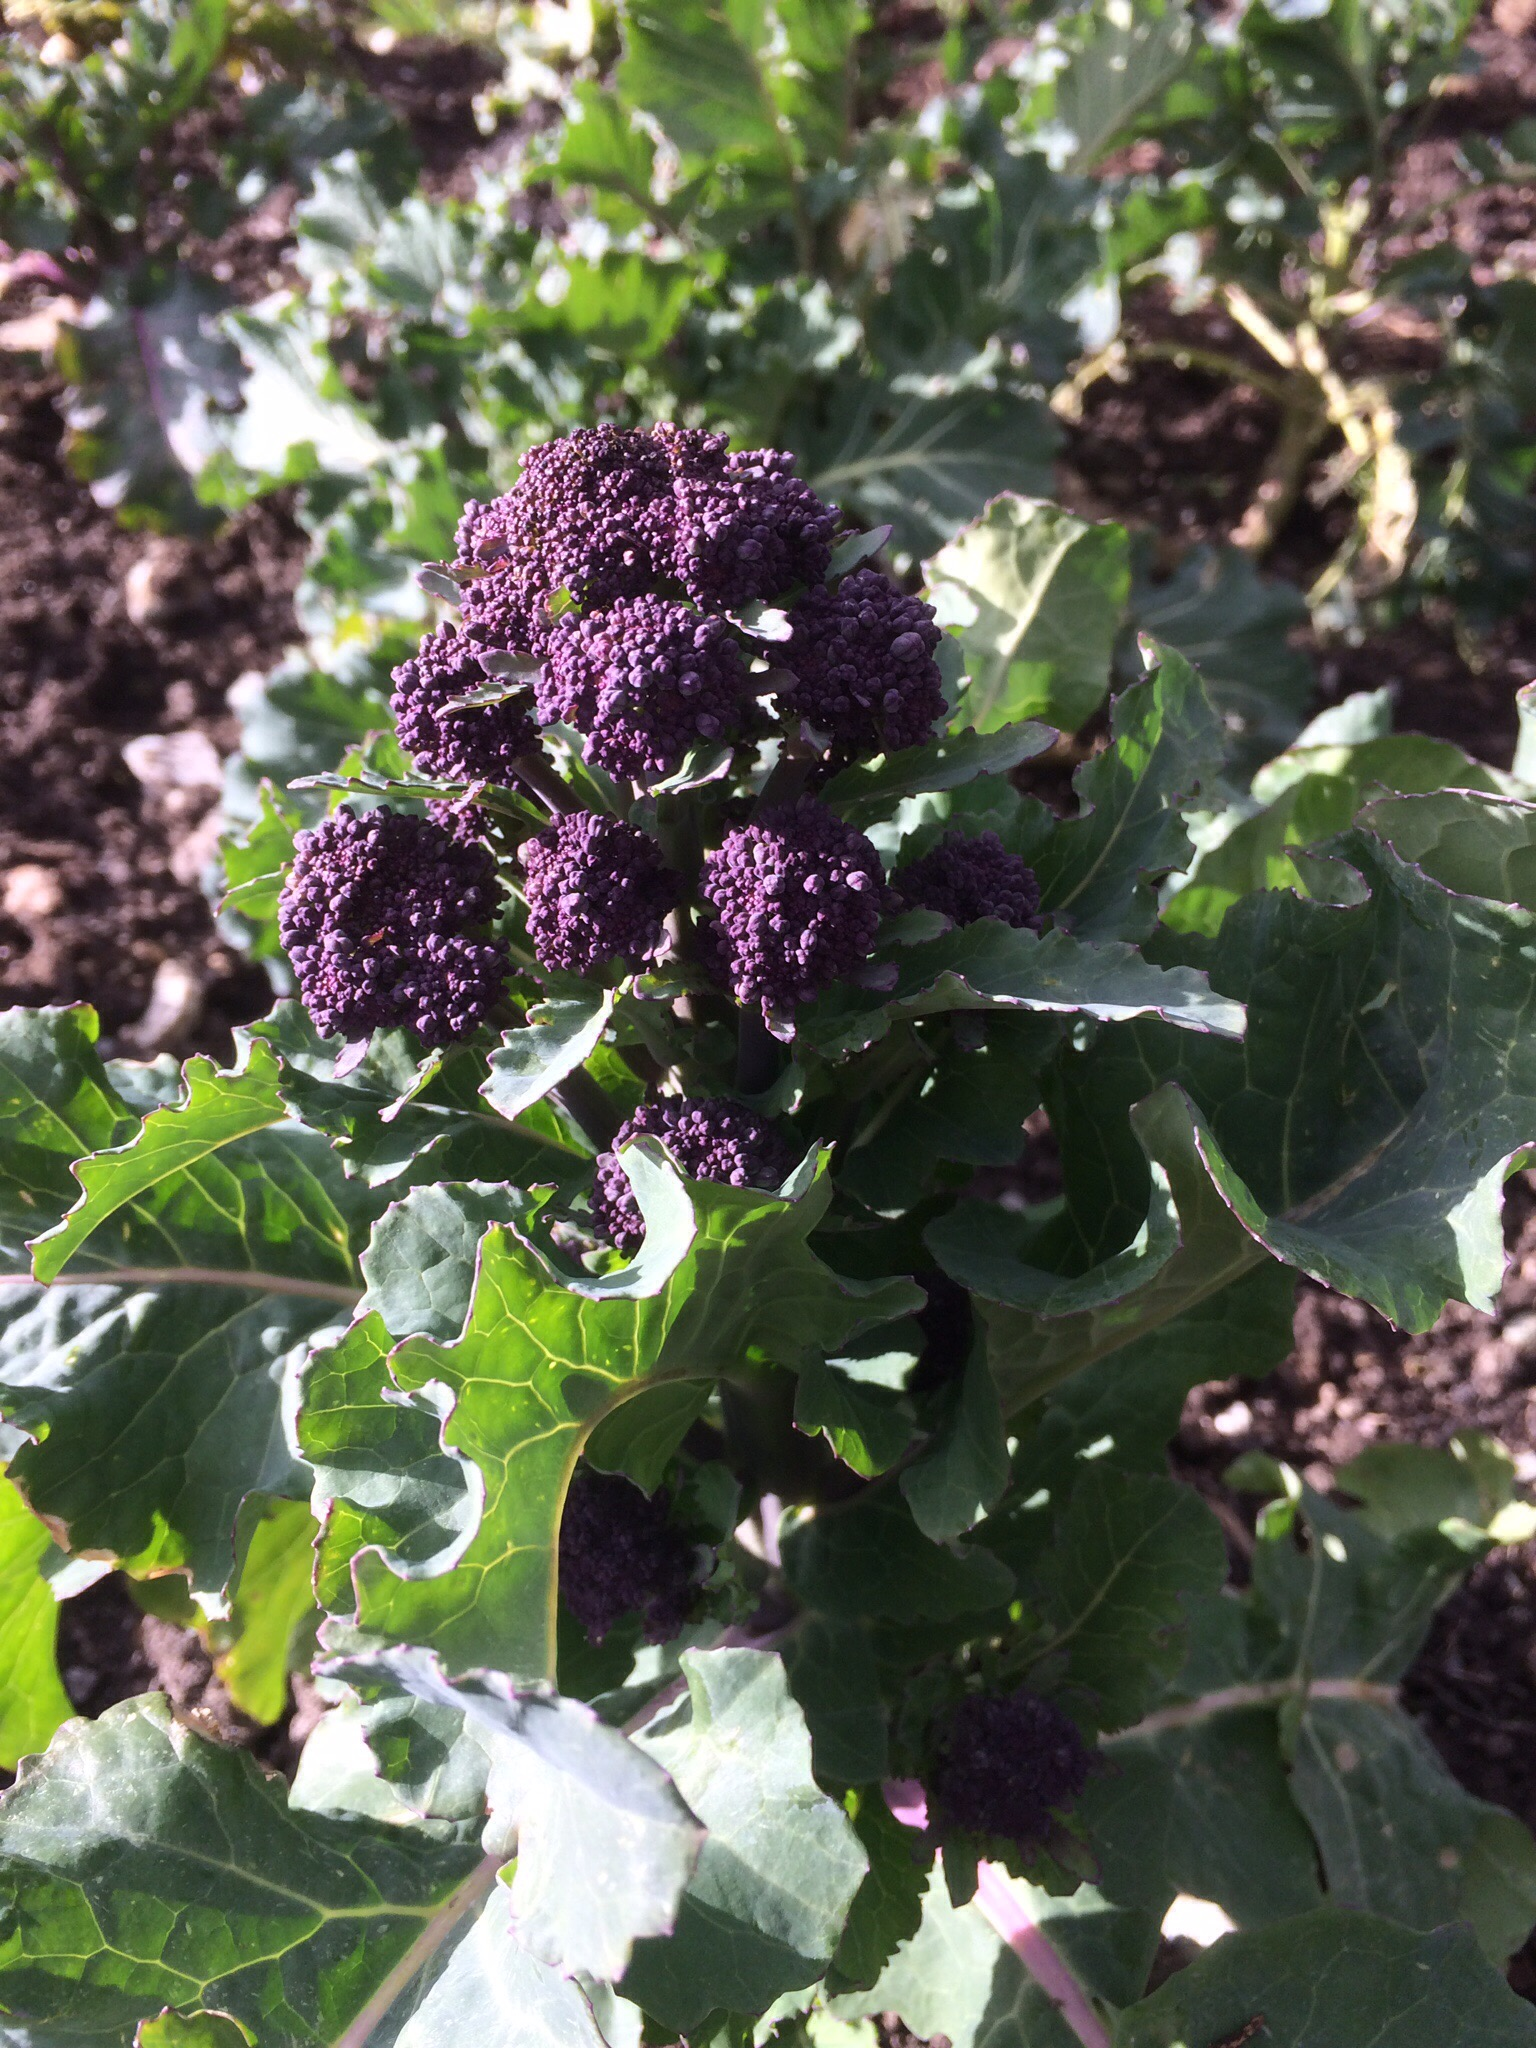 March 2016 trip to the allotment